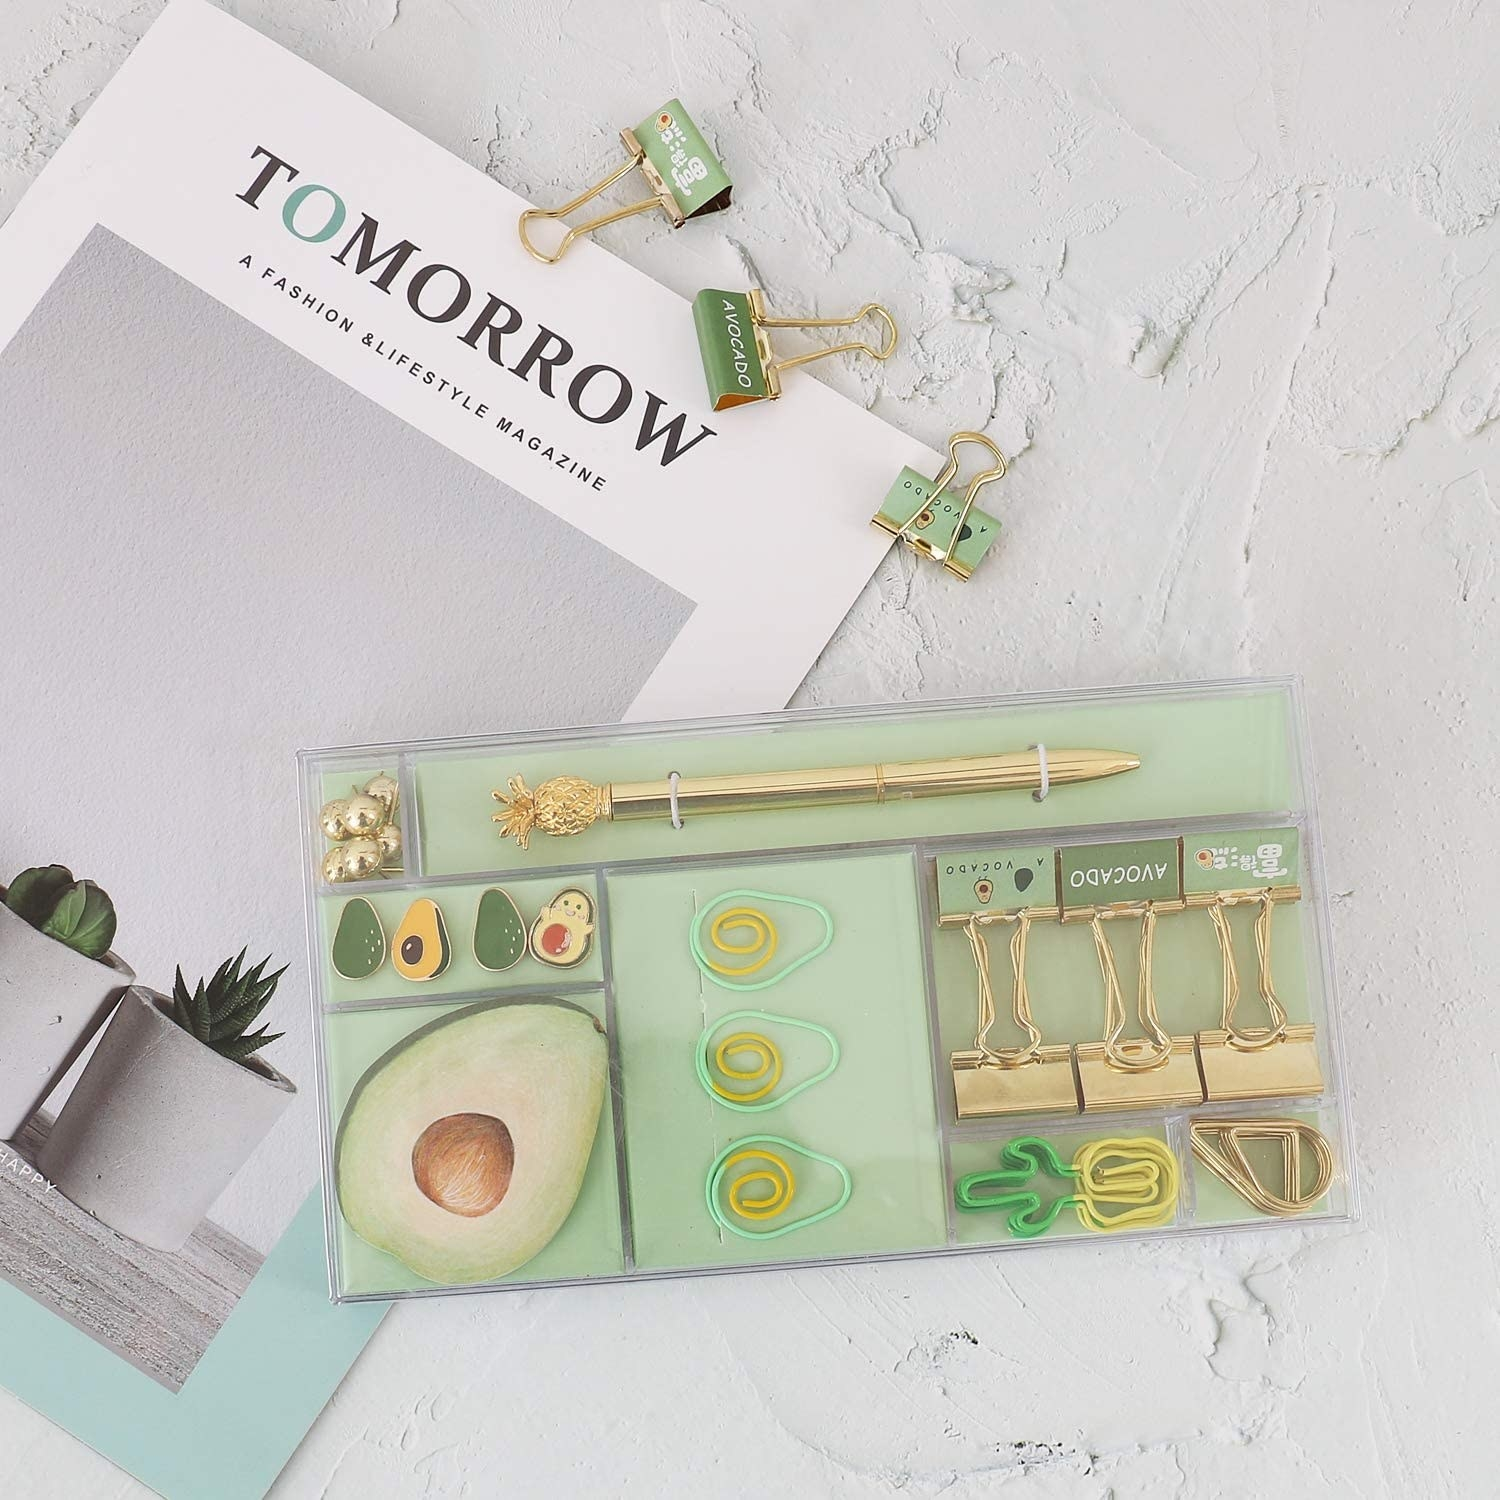 an avocado themed stationery set on a table next to a magazine